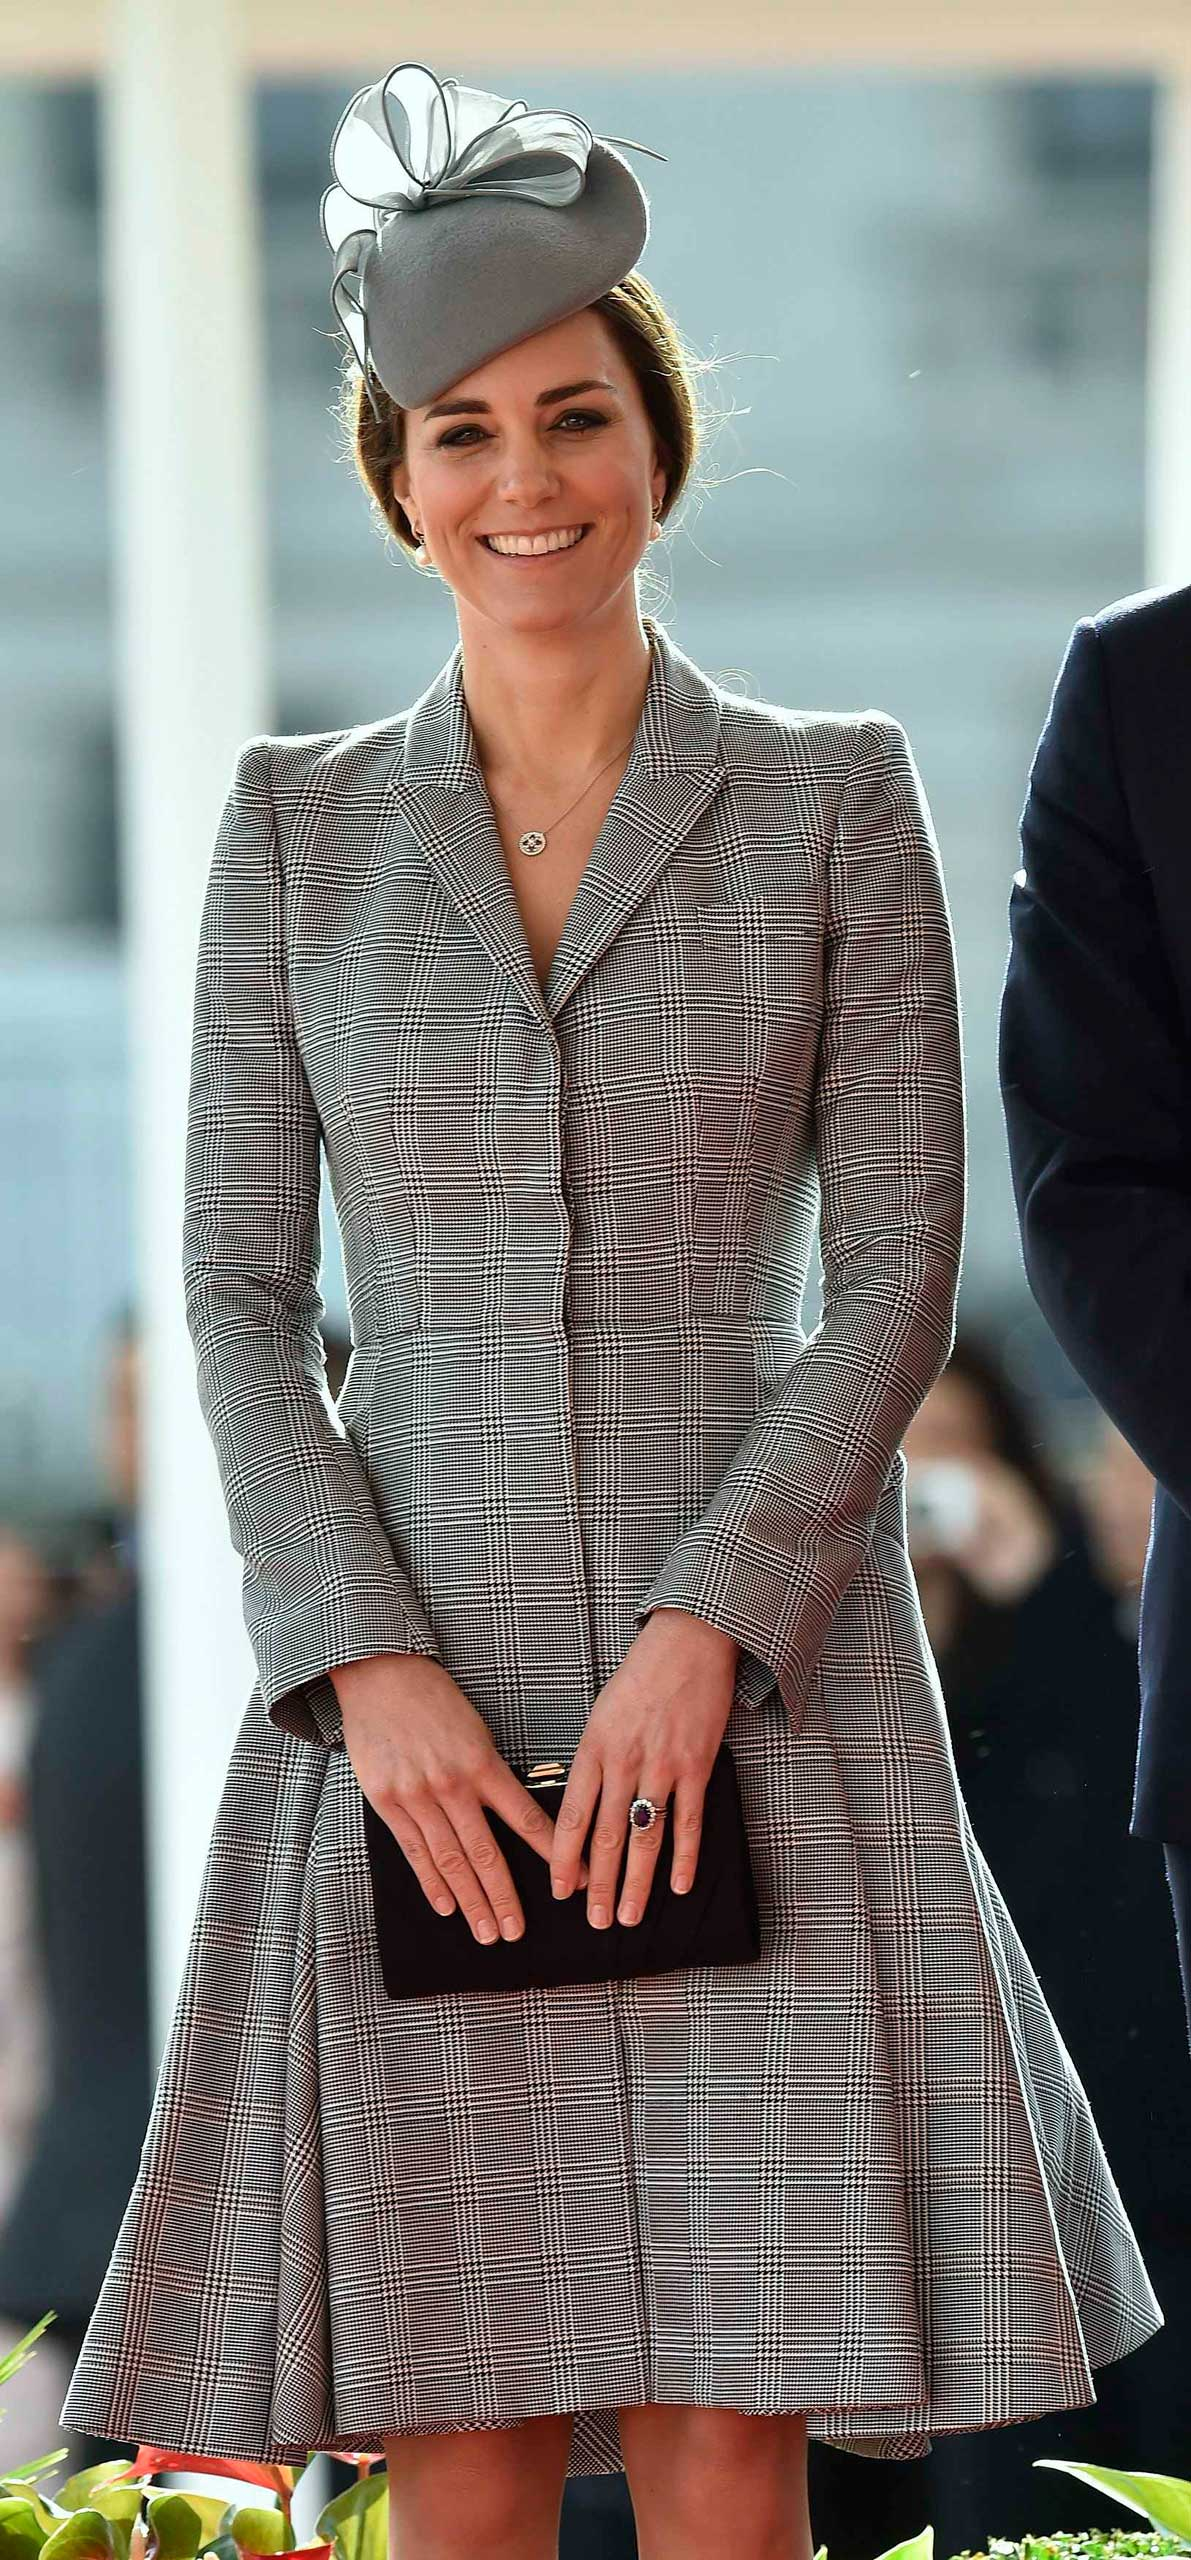 Catherine, Duchess of Cambridge smiles during a ceremonial welcome for the President of Singapore at Horse Guards Parade in London on Oct. 21, 2014.